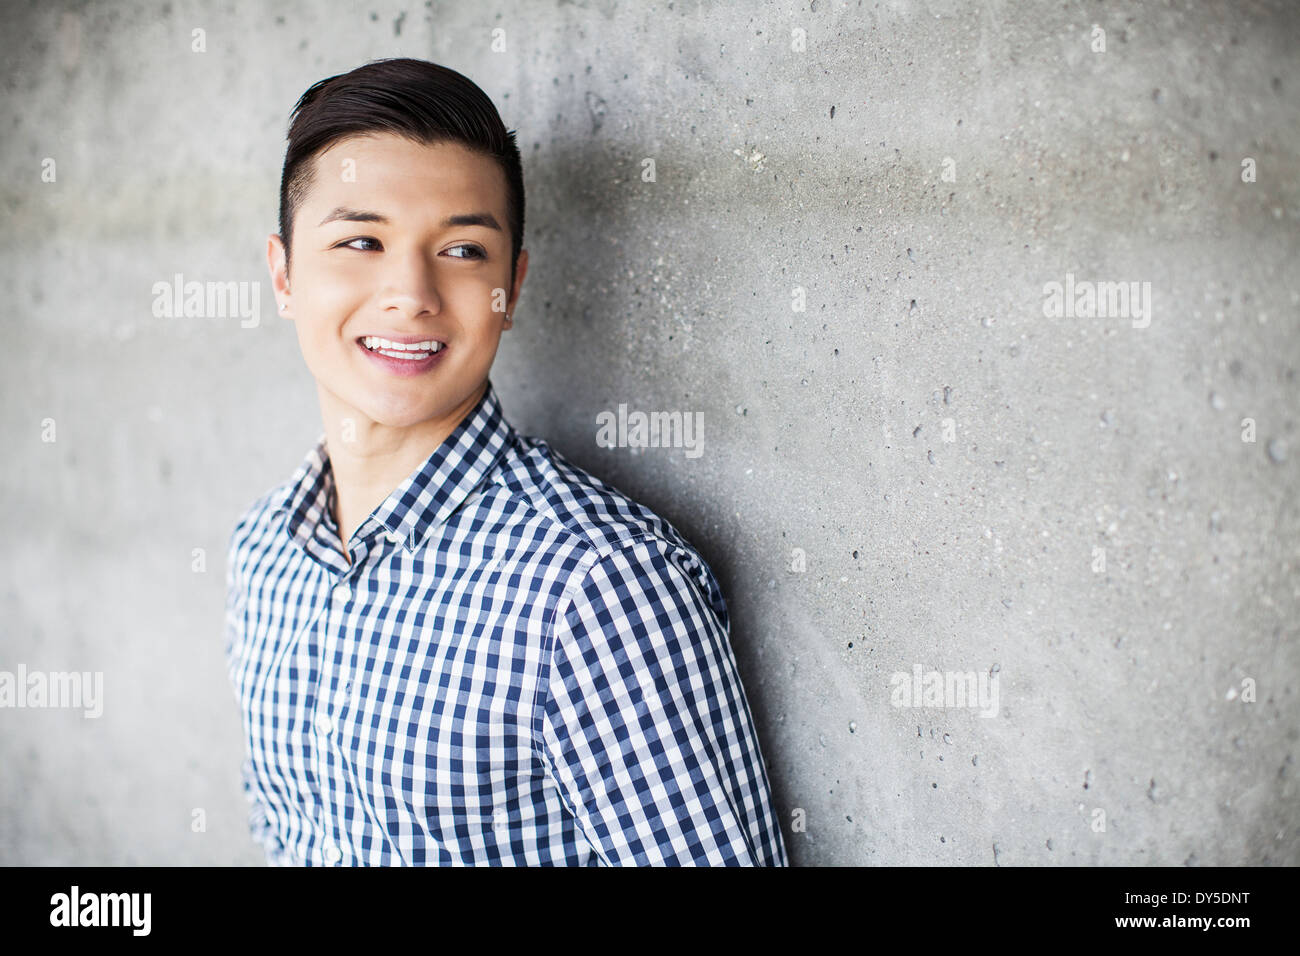 Portrait of young man leaning against wall Photo Stock